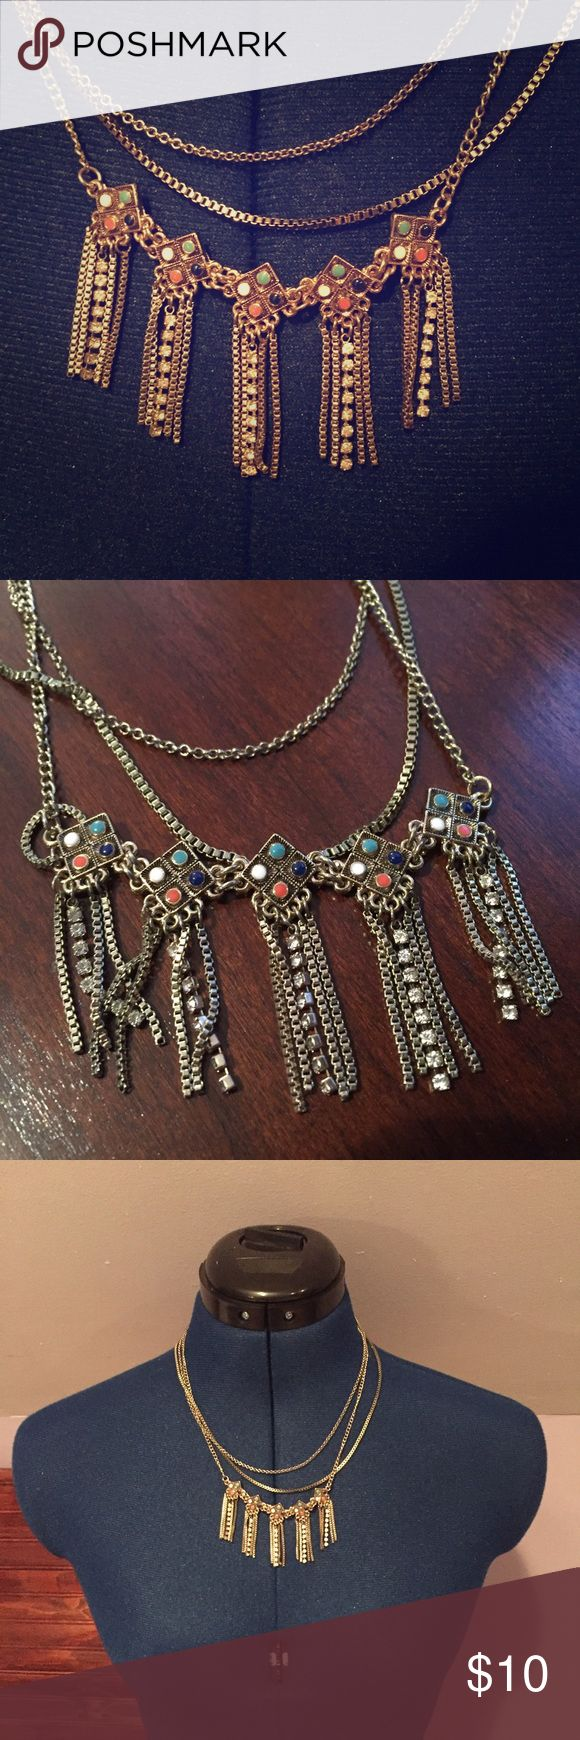 Three-chained Aztec Necklace Used, but in perfect condition. Feel free to ask questions. No trades. Jewelry Necklaces